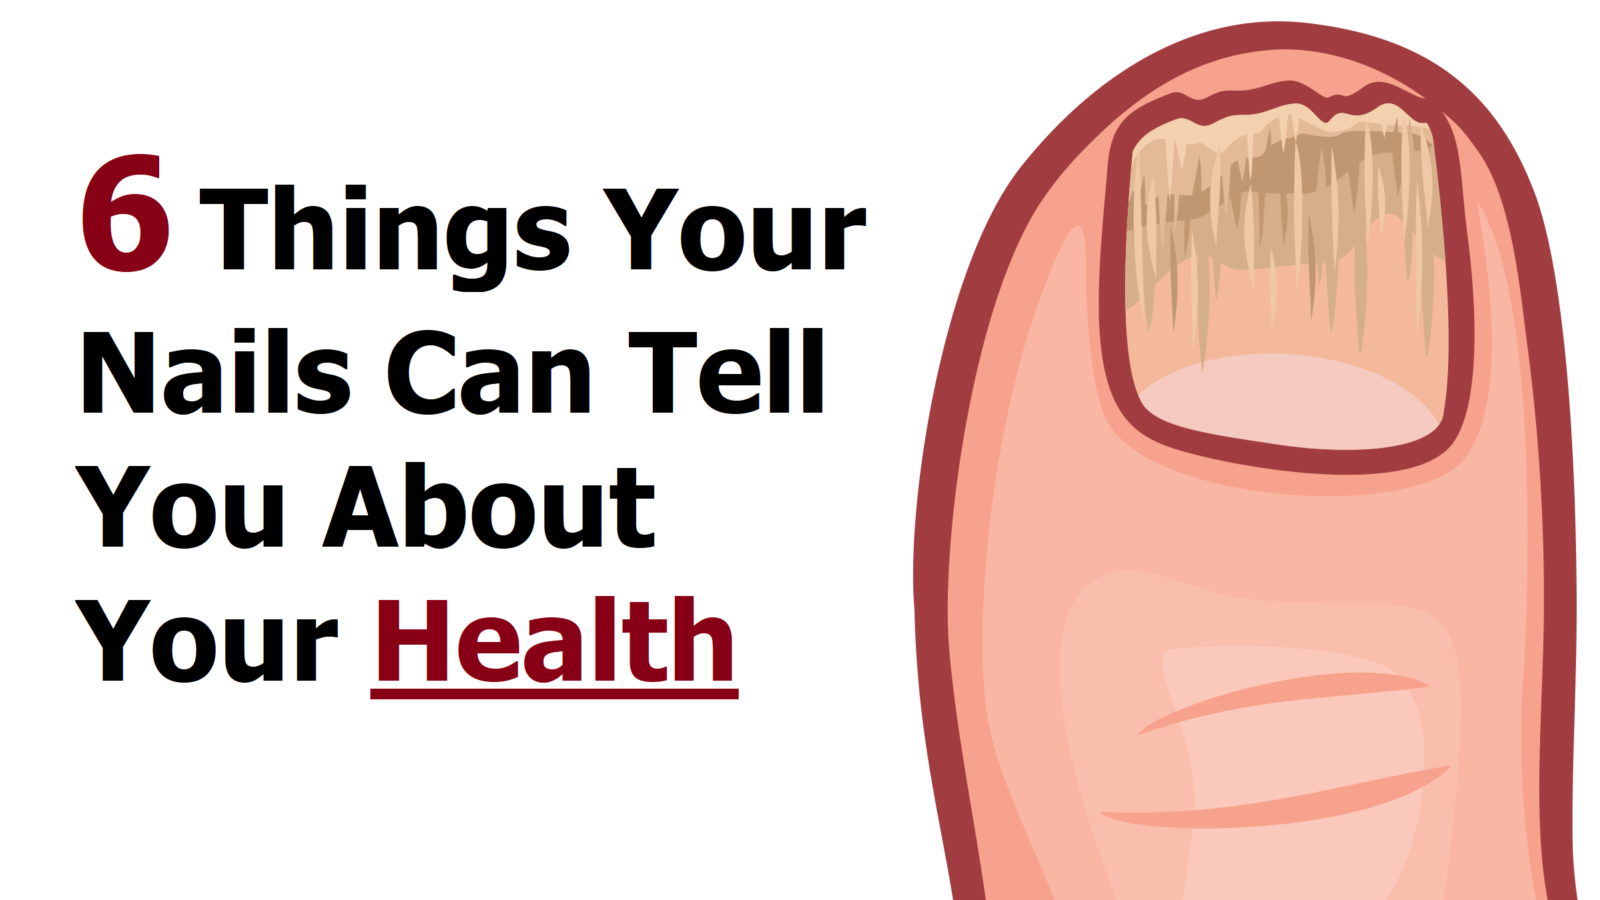 6 Things Your Nails Can Tell You About Your Health